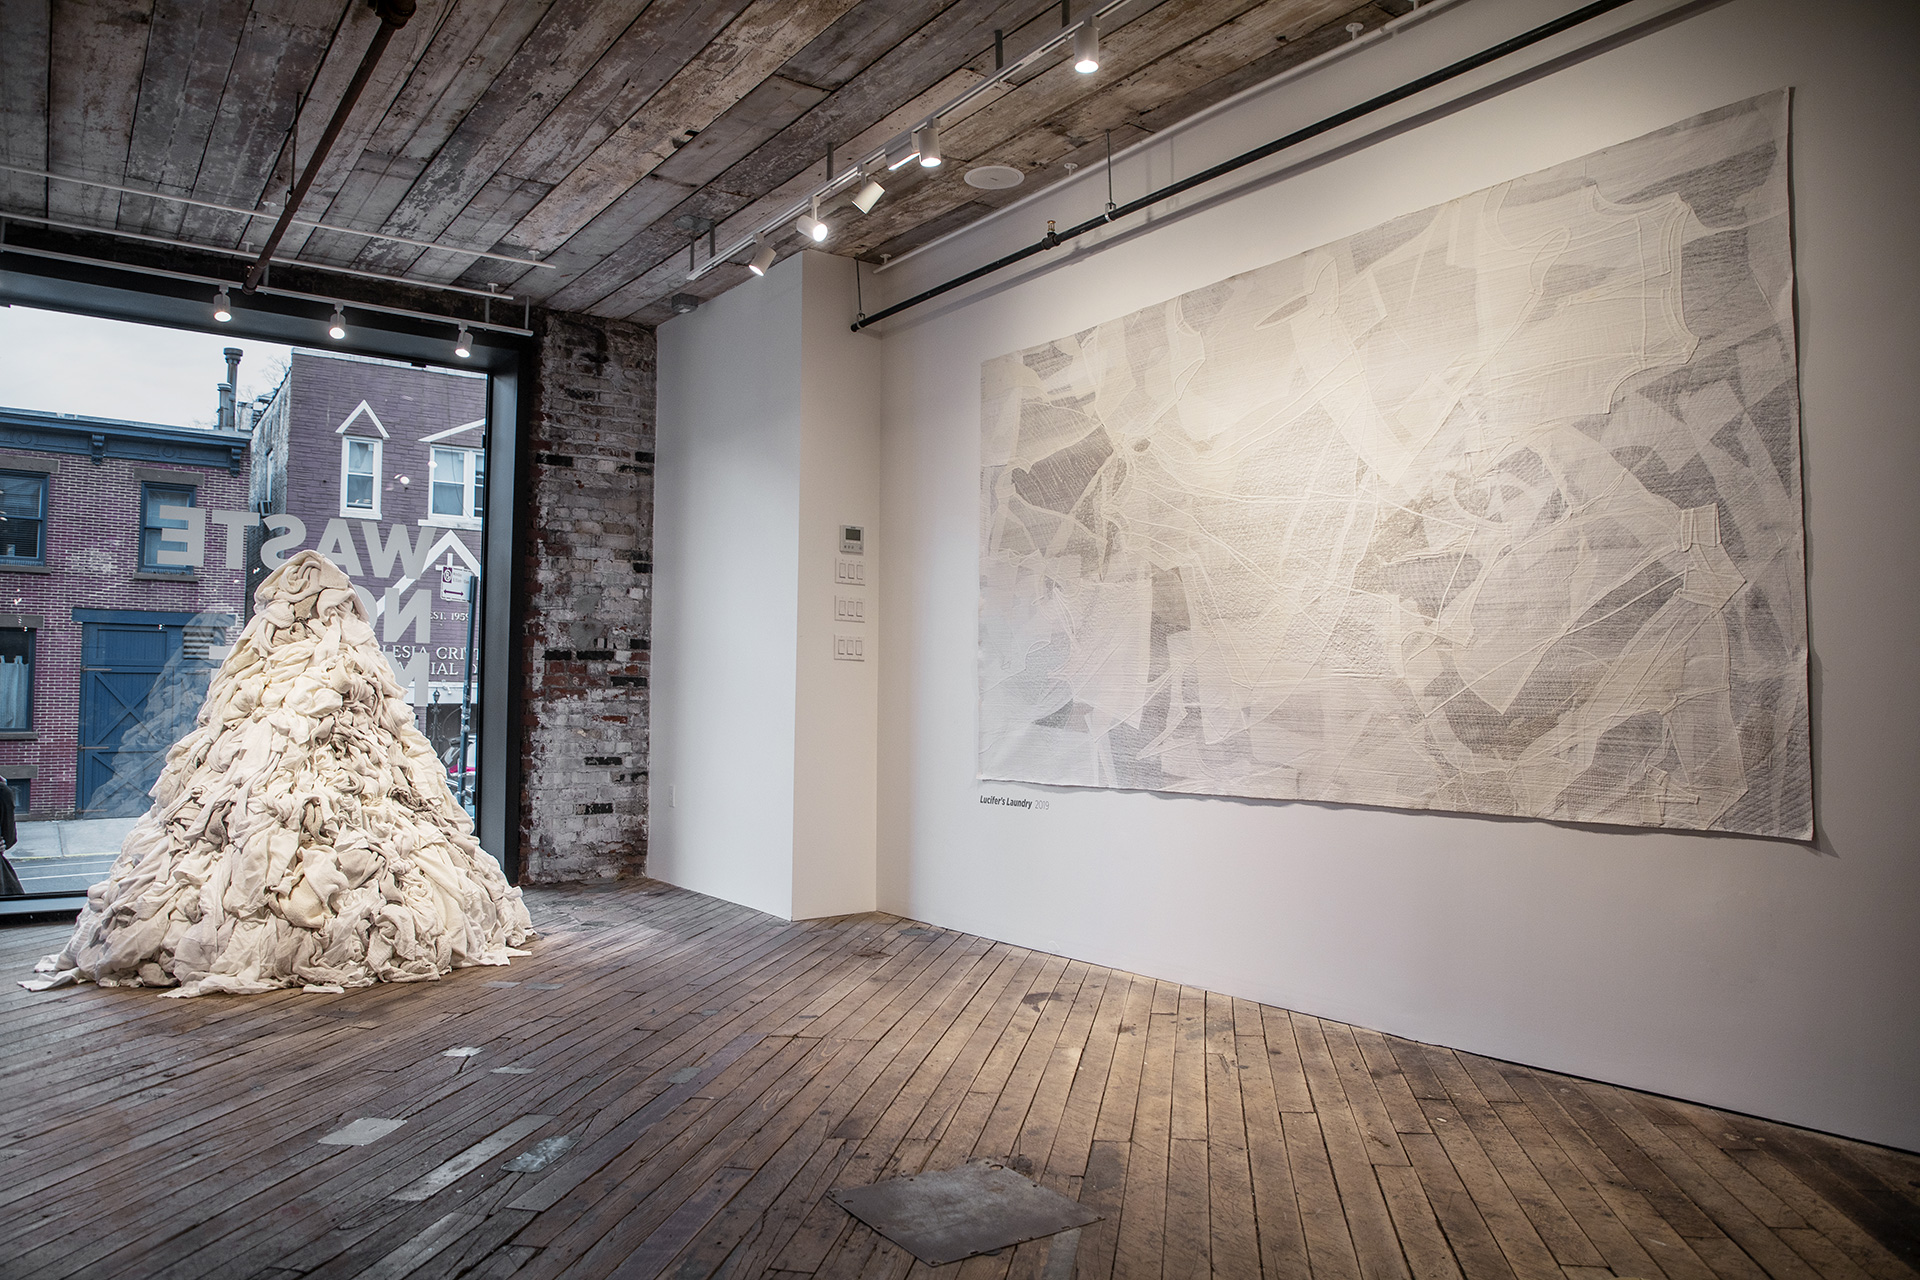 Eileen Fisher in Brooklyn, New York |Waste No More | Eileen Fisher| Galleria Rosanna Orlandi | Milan Design Week 2019 | STIR